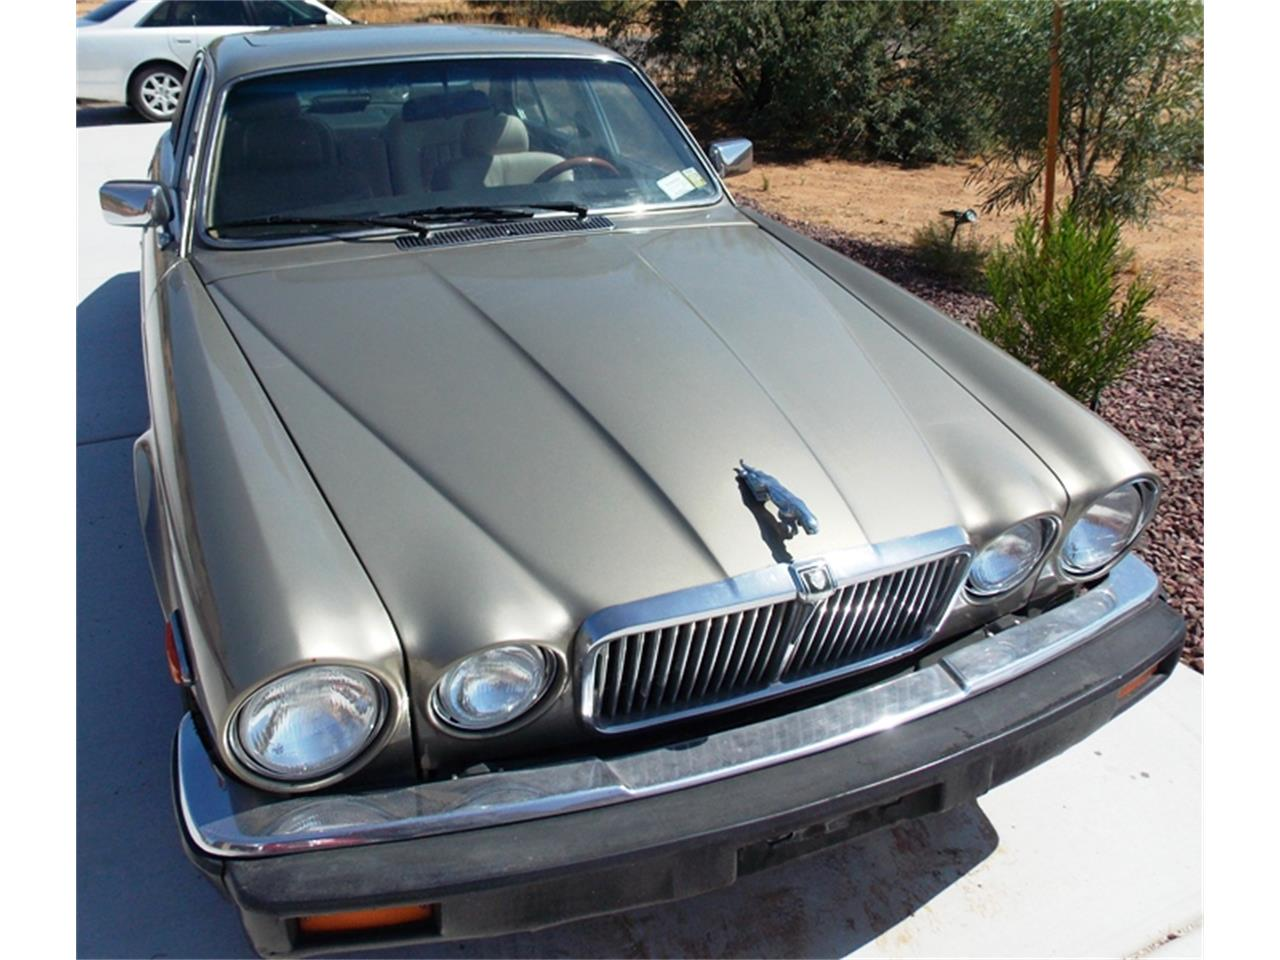 Large Picture of 1986 Jaguar XJ6 - $7,500.00 Offered by Old Iron AZ LLC - QNNV